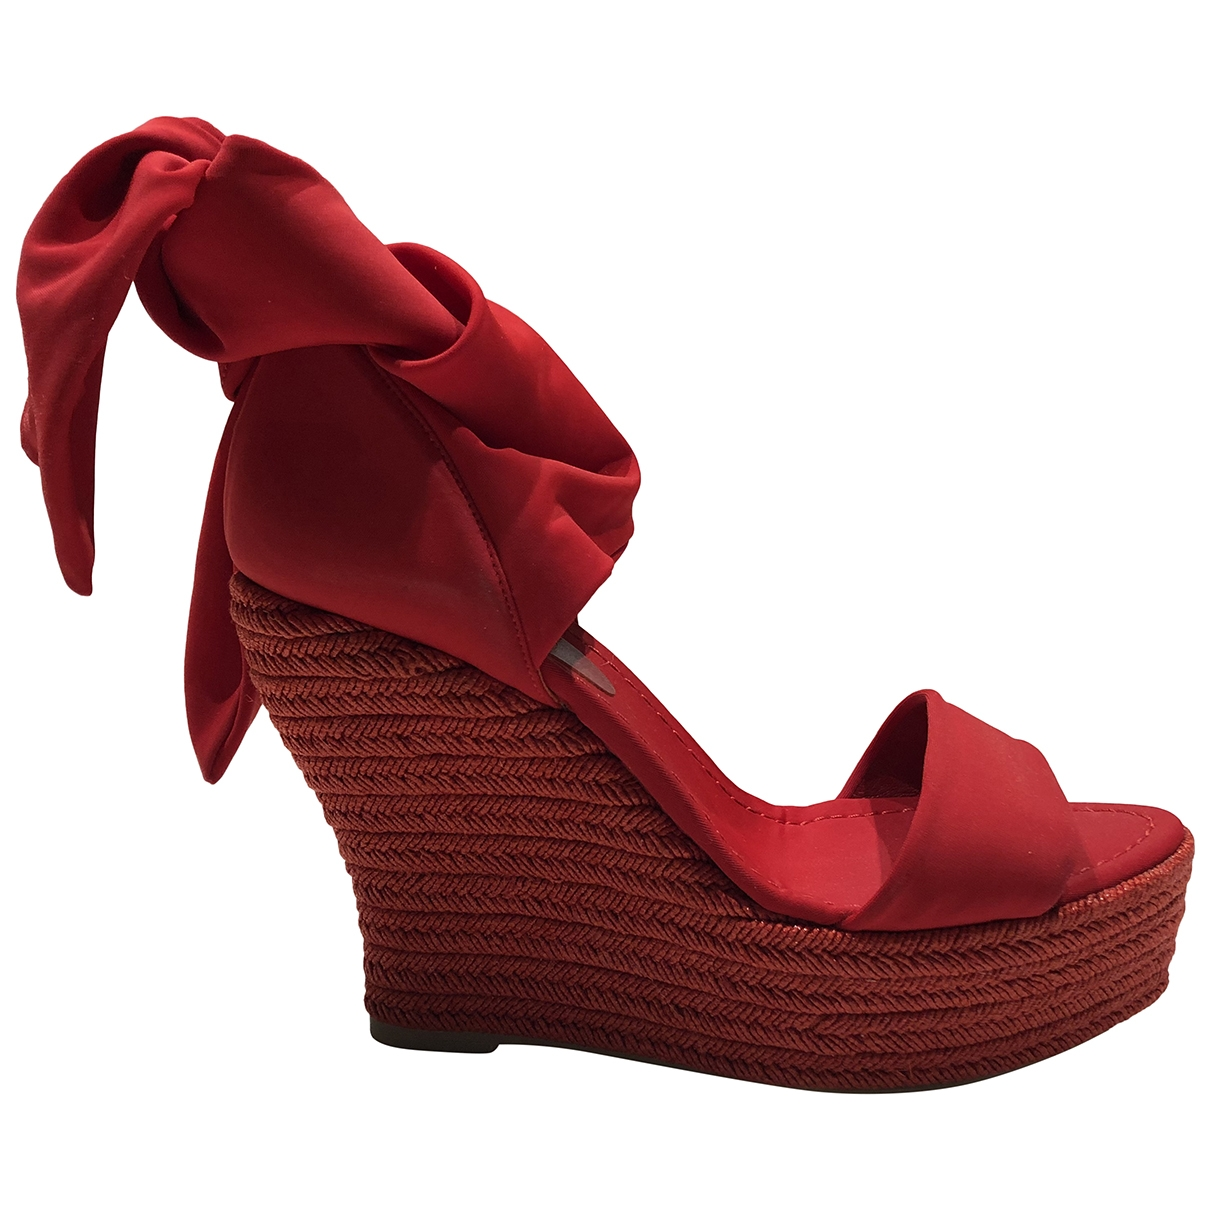 Castaner \N Espadrilles in  Rot Synthetik